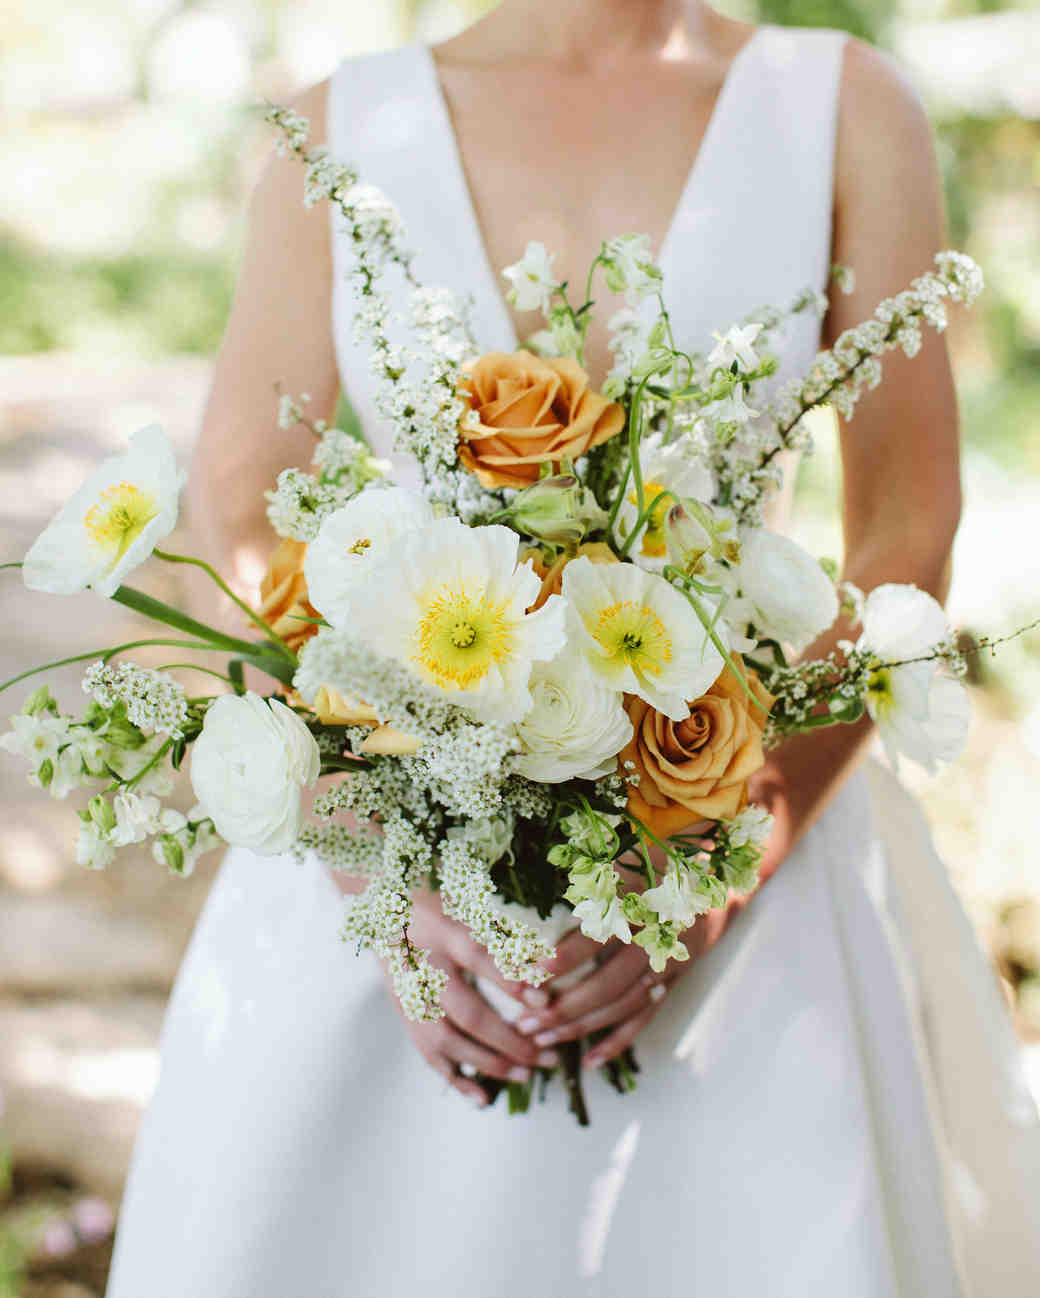 52 Ideas For Your Spring Wedding Bouquet